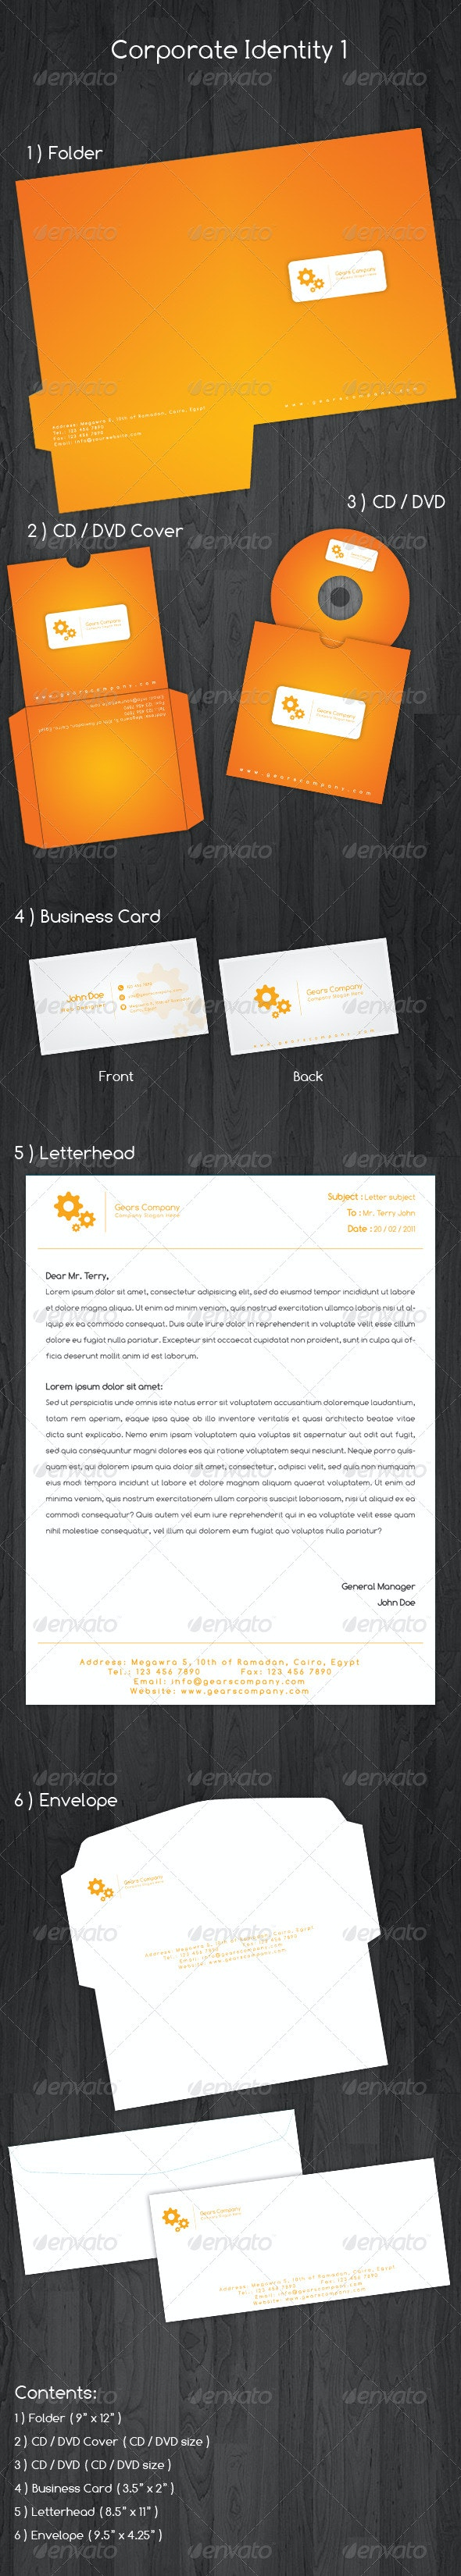 Gears Corporate Identity - Stationery Print Templates